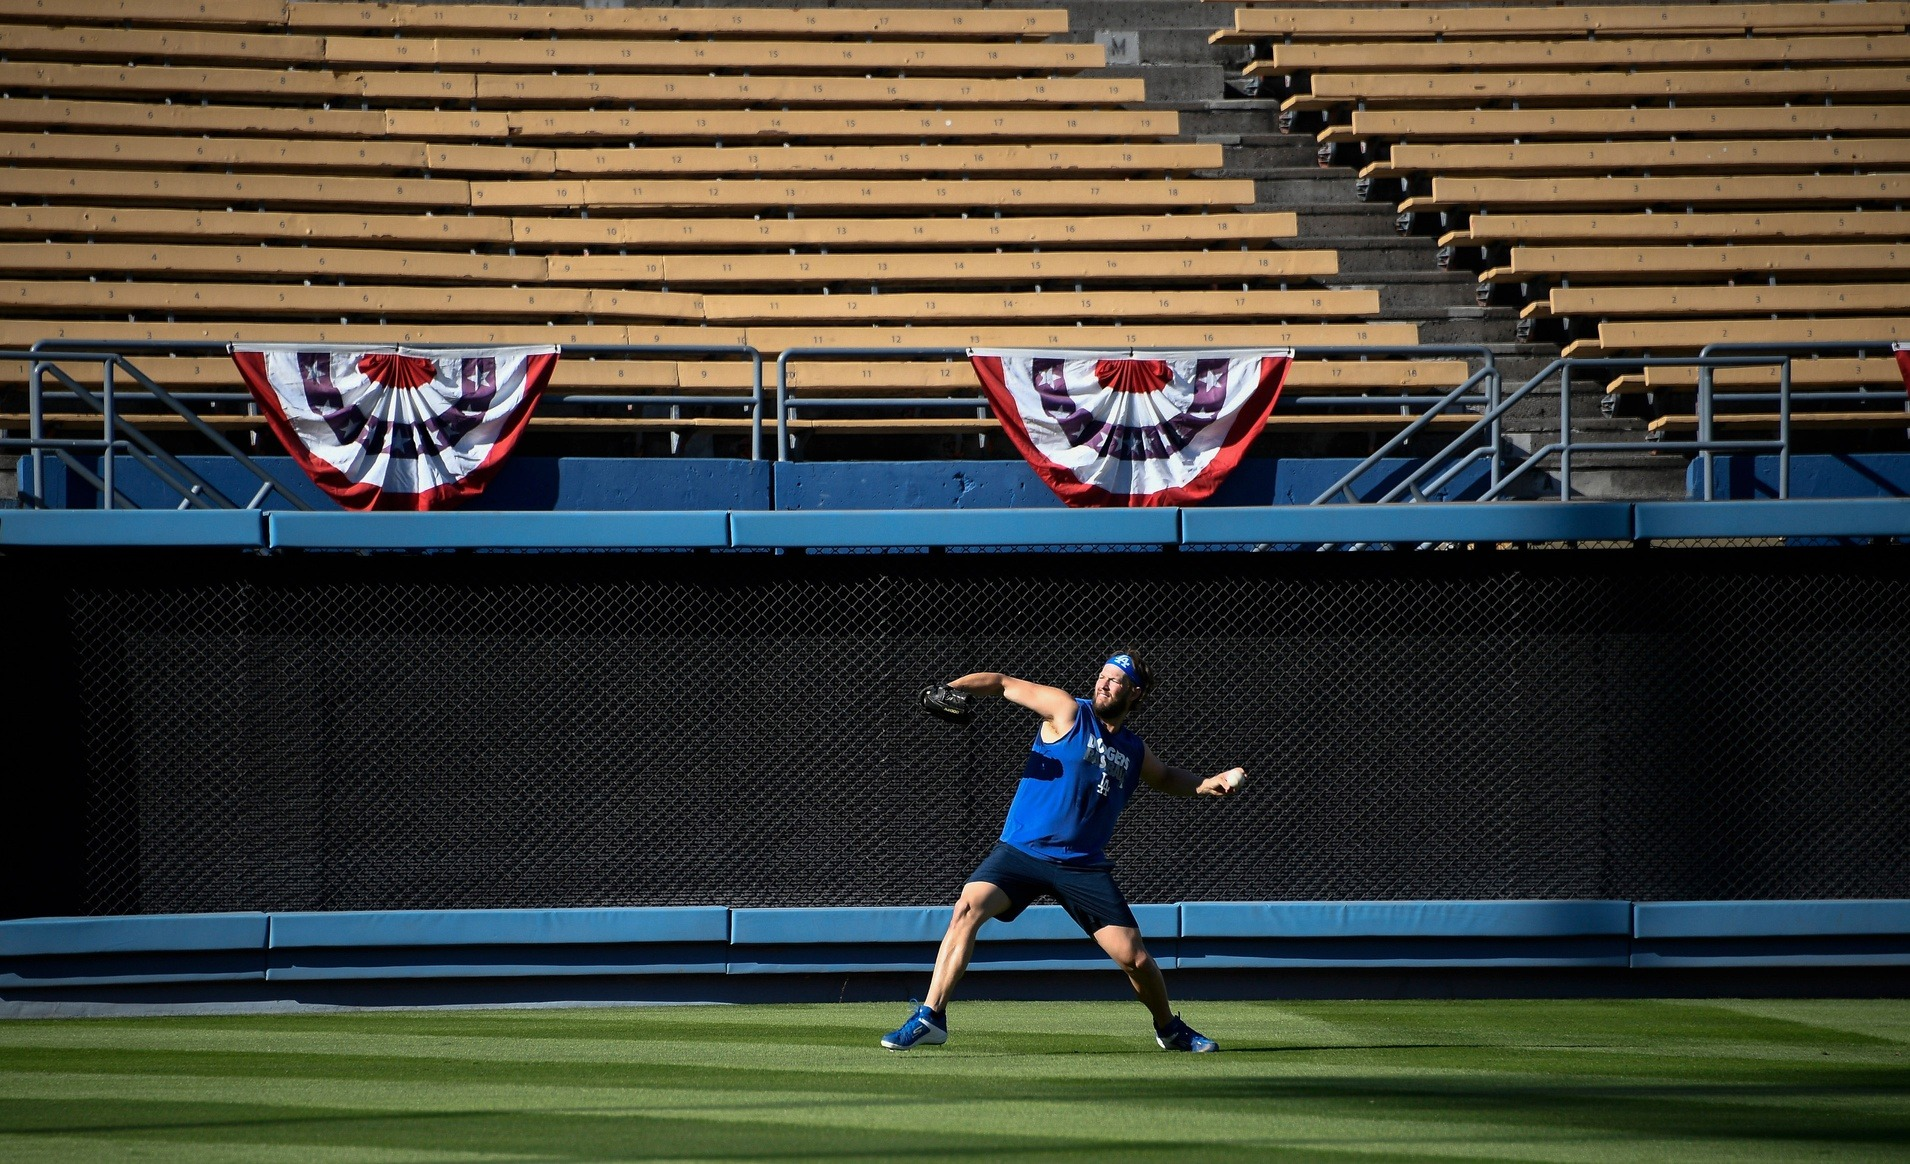 guy throwing with nobody in the stands